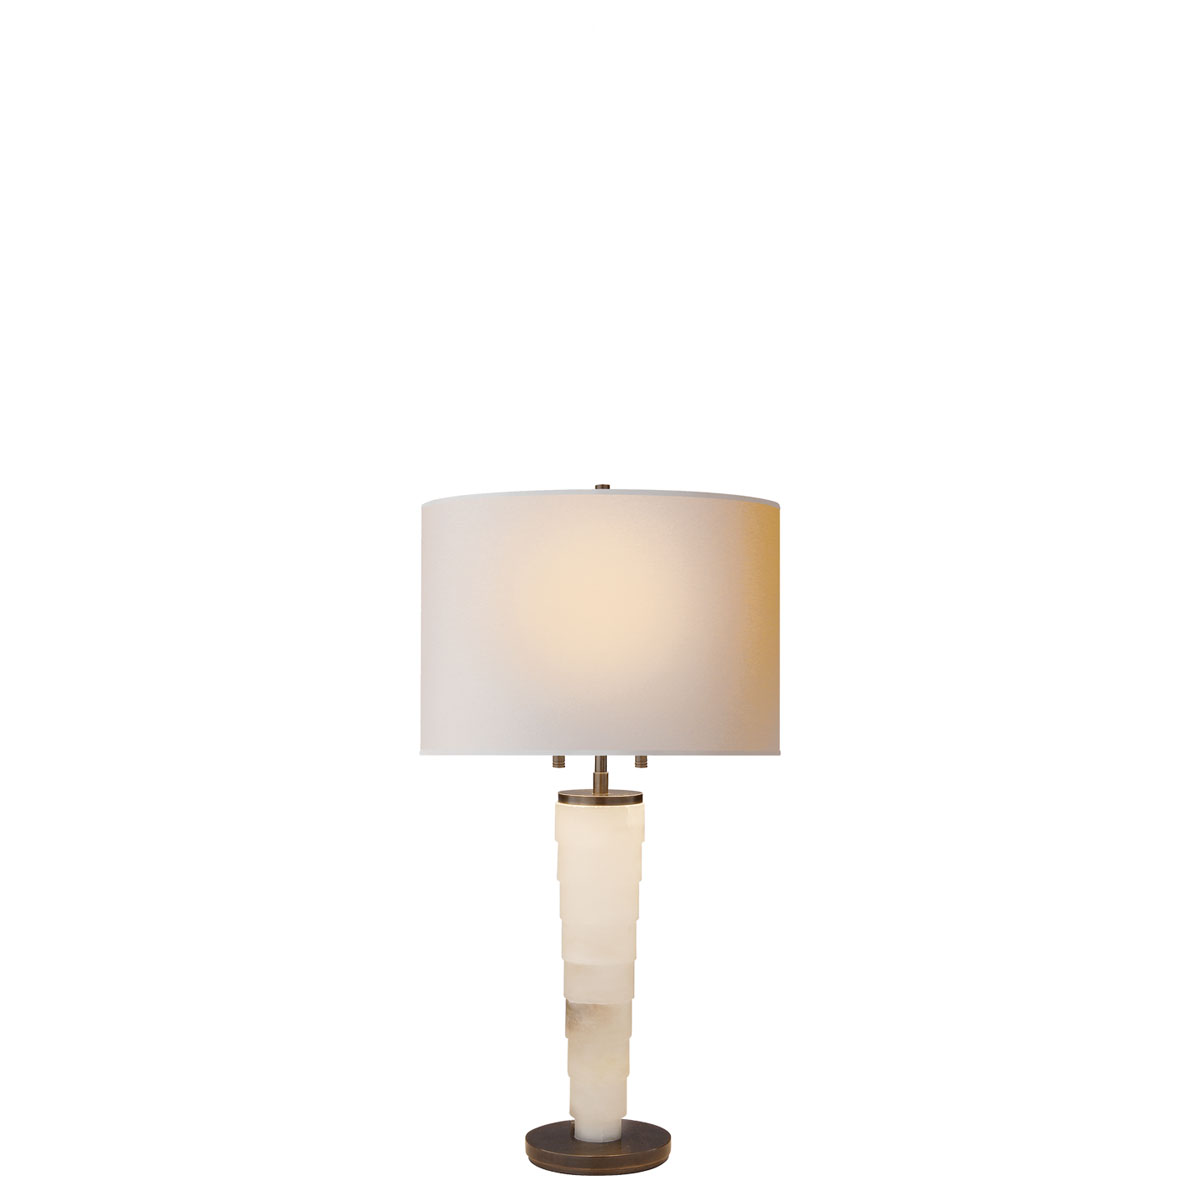 Visual comfort large stanford table table lamp neenas lighting alabaster natural stone finish natural paper shade chevronleft large stanford table geotapseo Choice Image